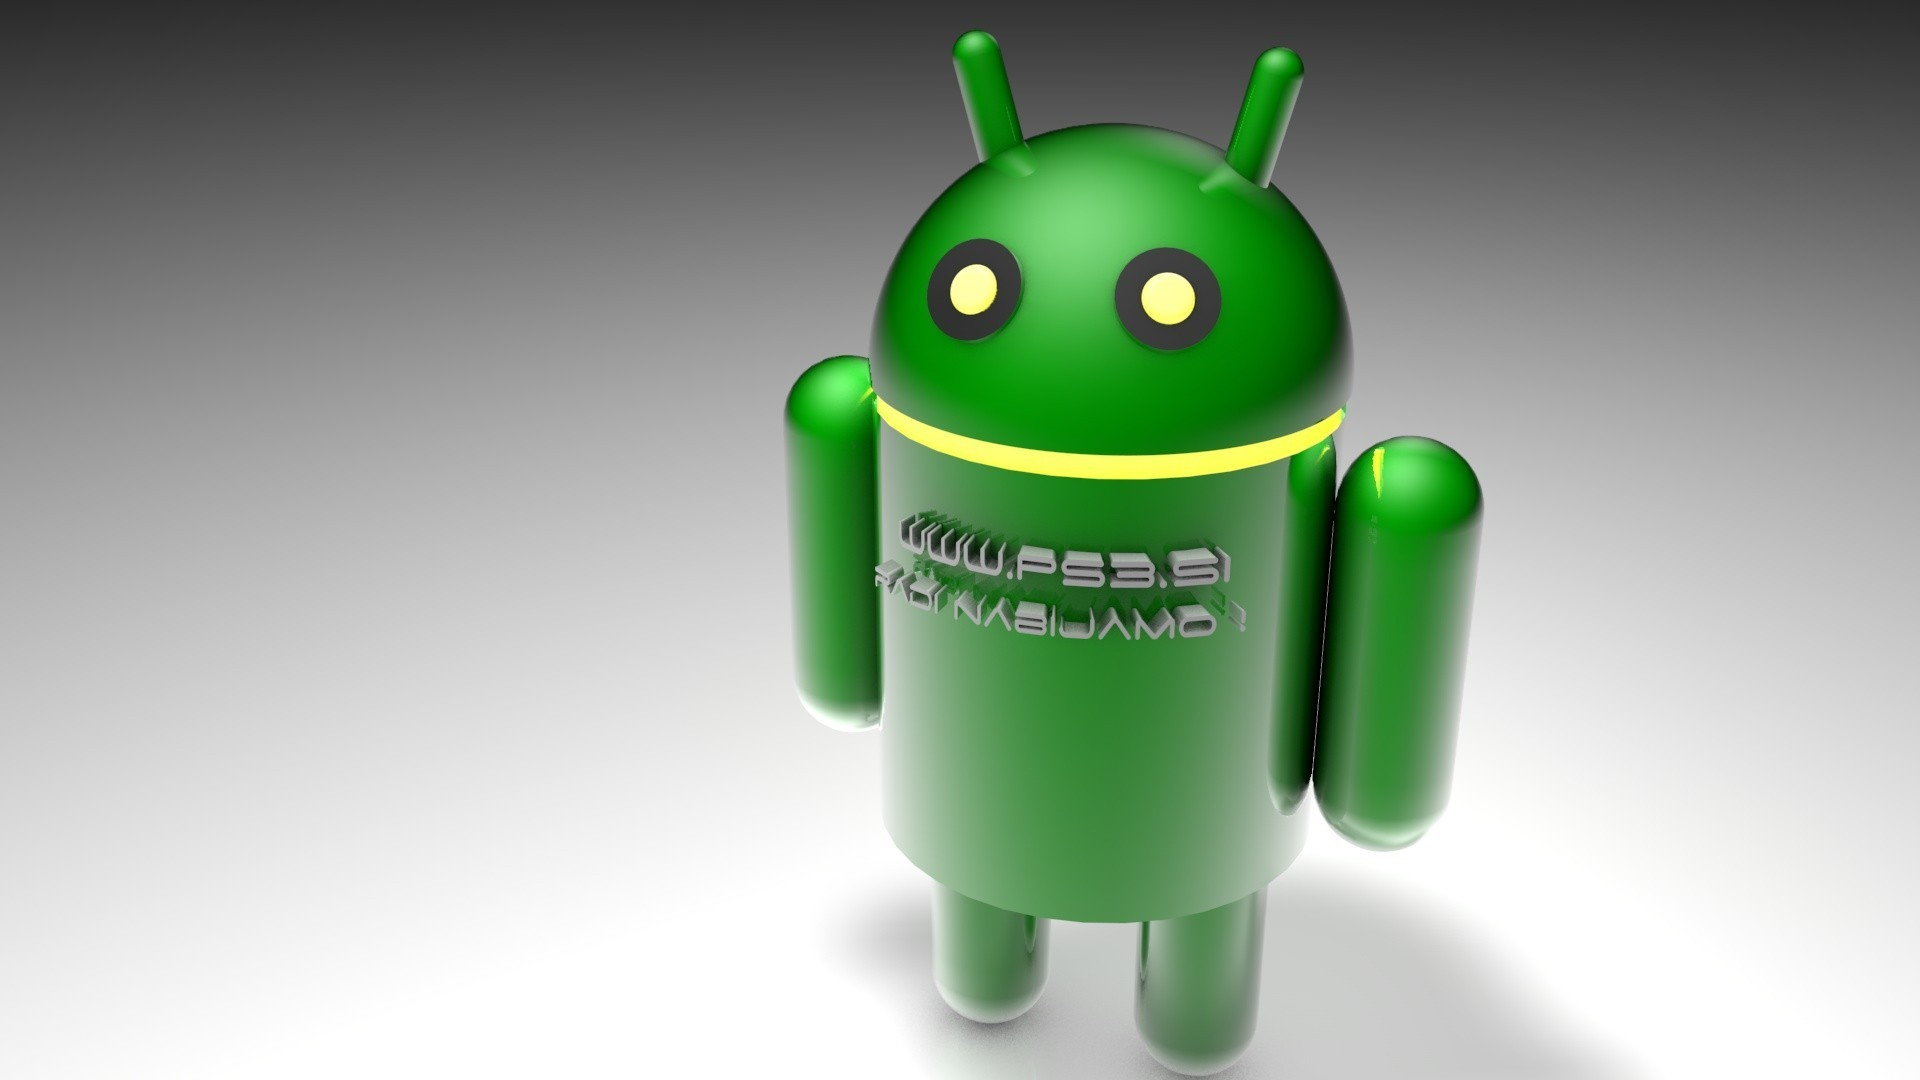 android apps logos wallpaper